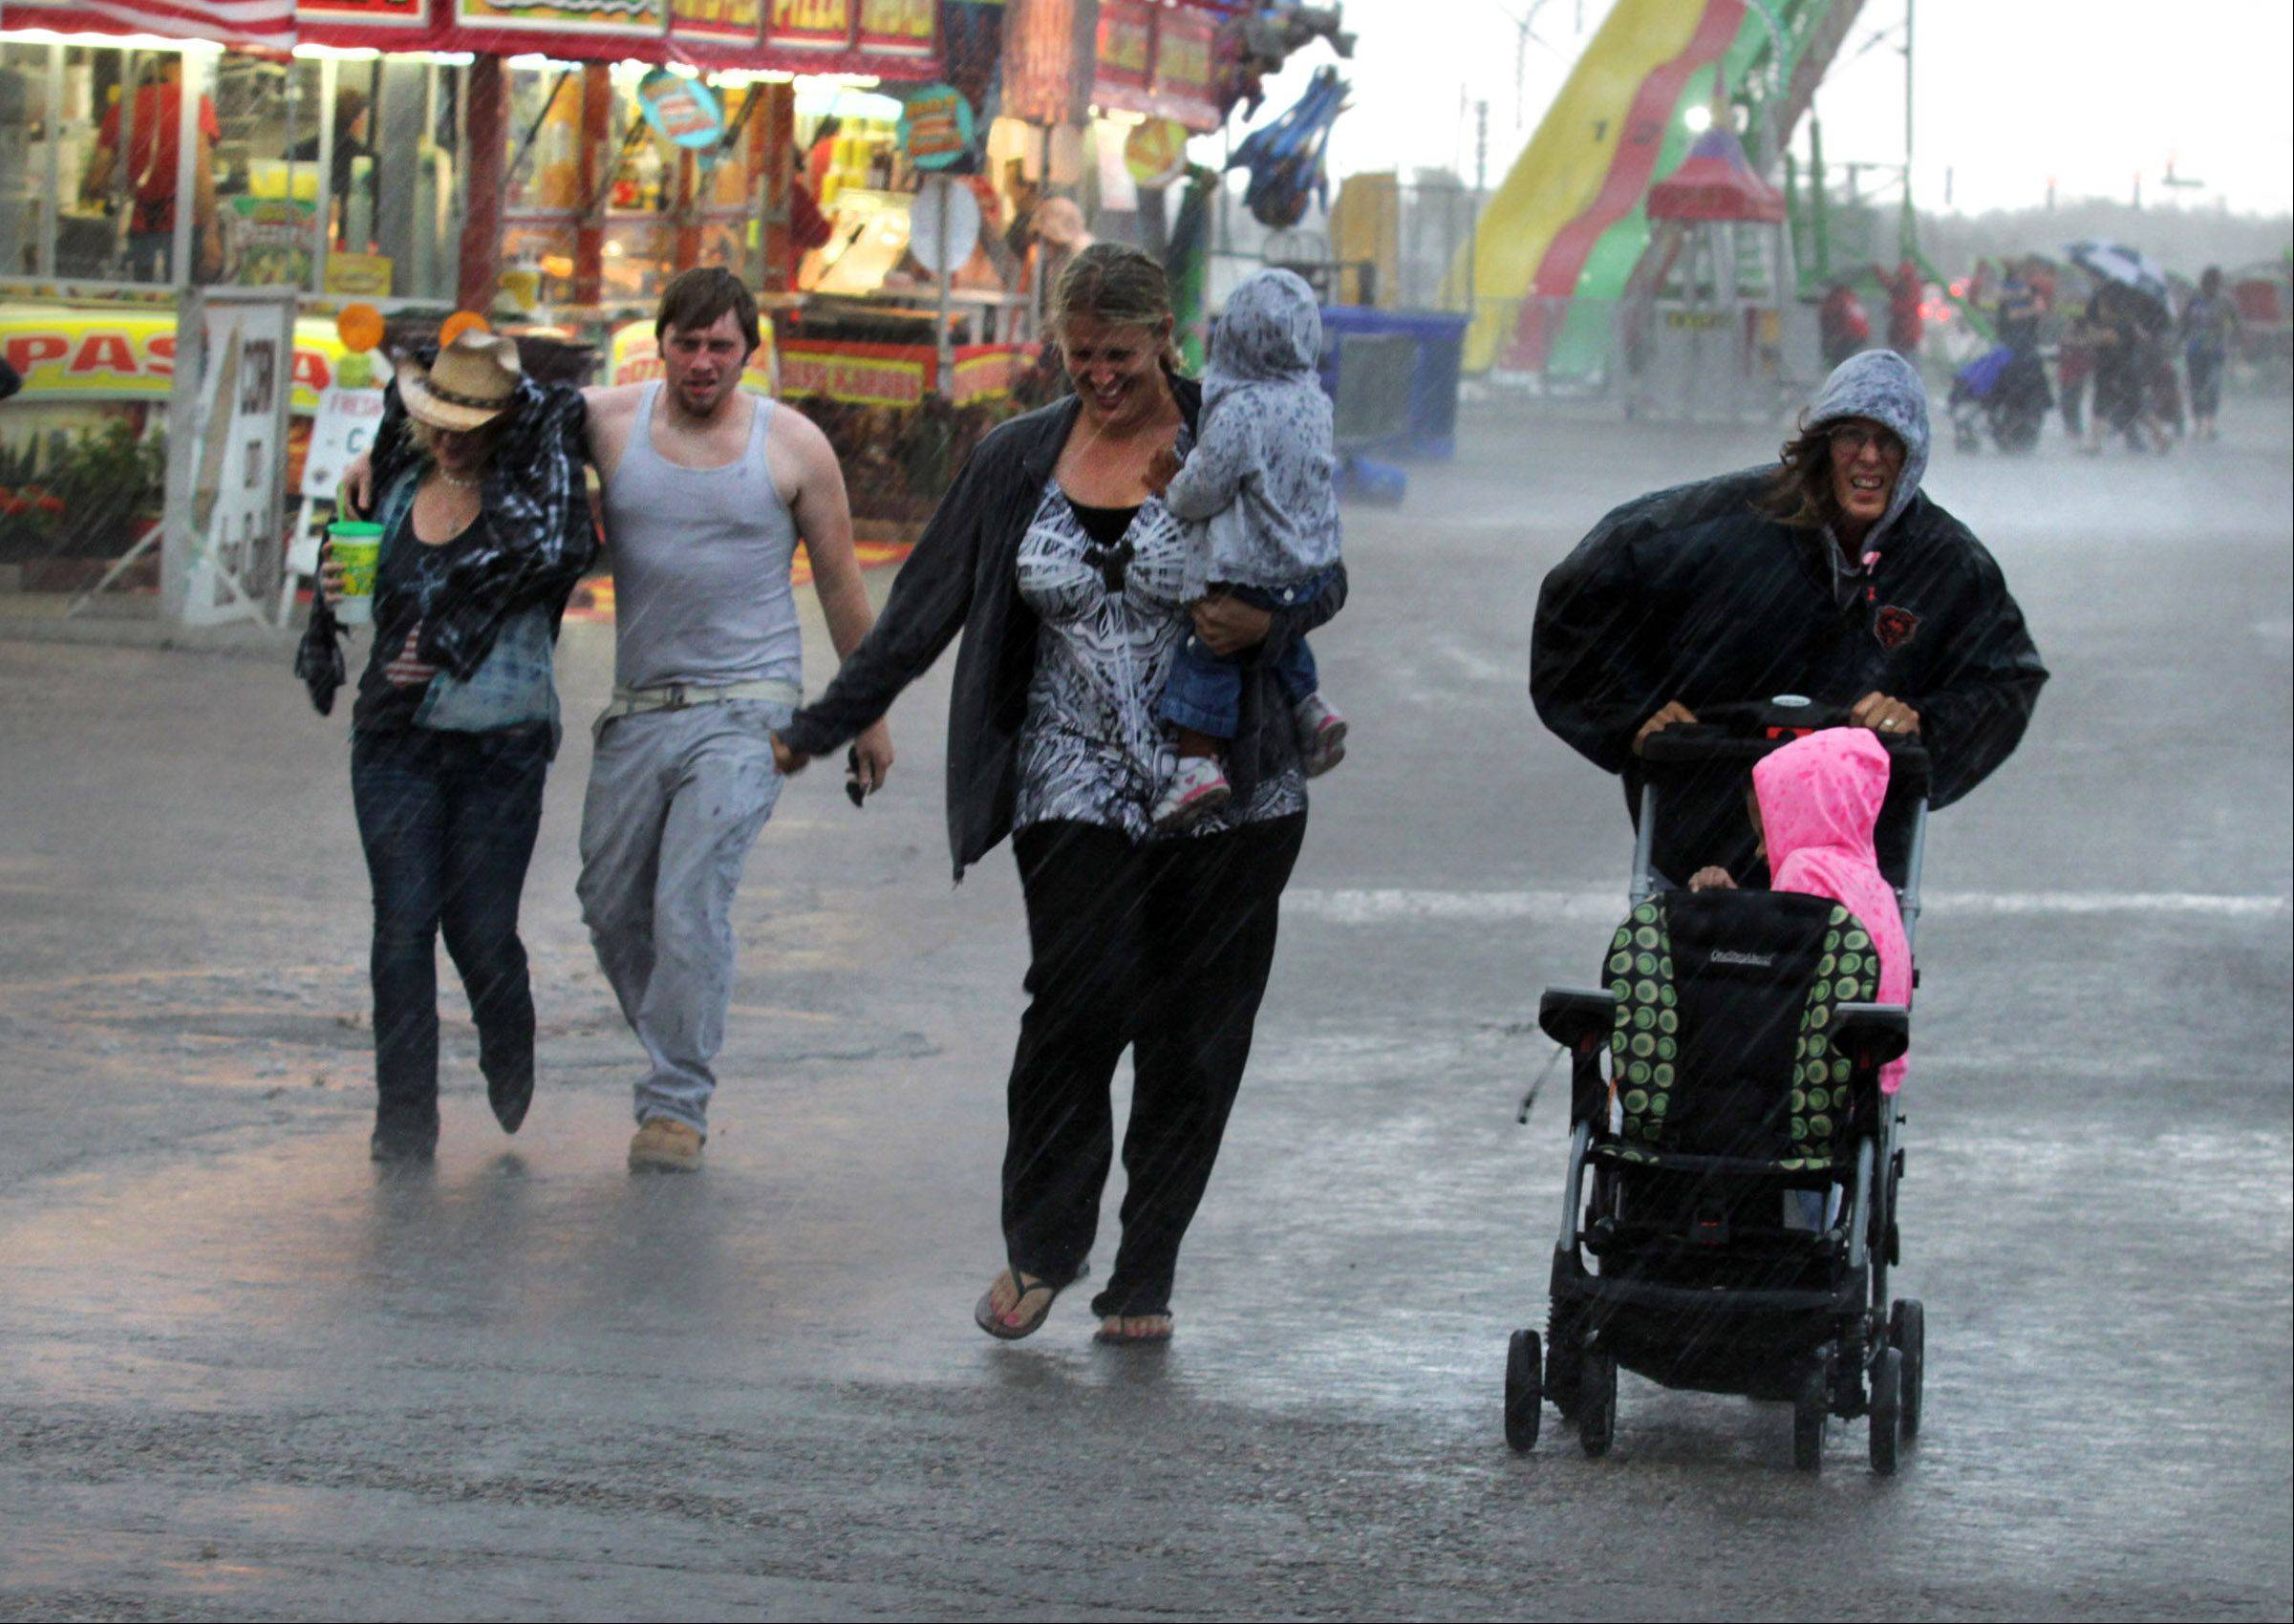 Fair goers run for cover as rain falls heavy at the Lake County Fair. The antique tractor parade, Midwest Truck and Tractor Pull, Battle of the Barns, and Main stage bands were cancelled due to weather.